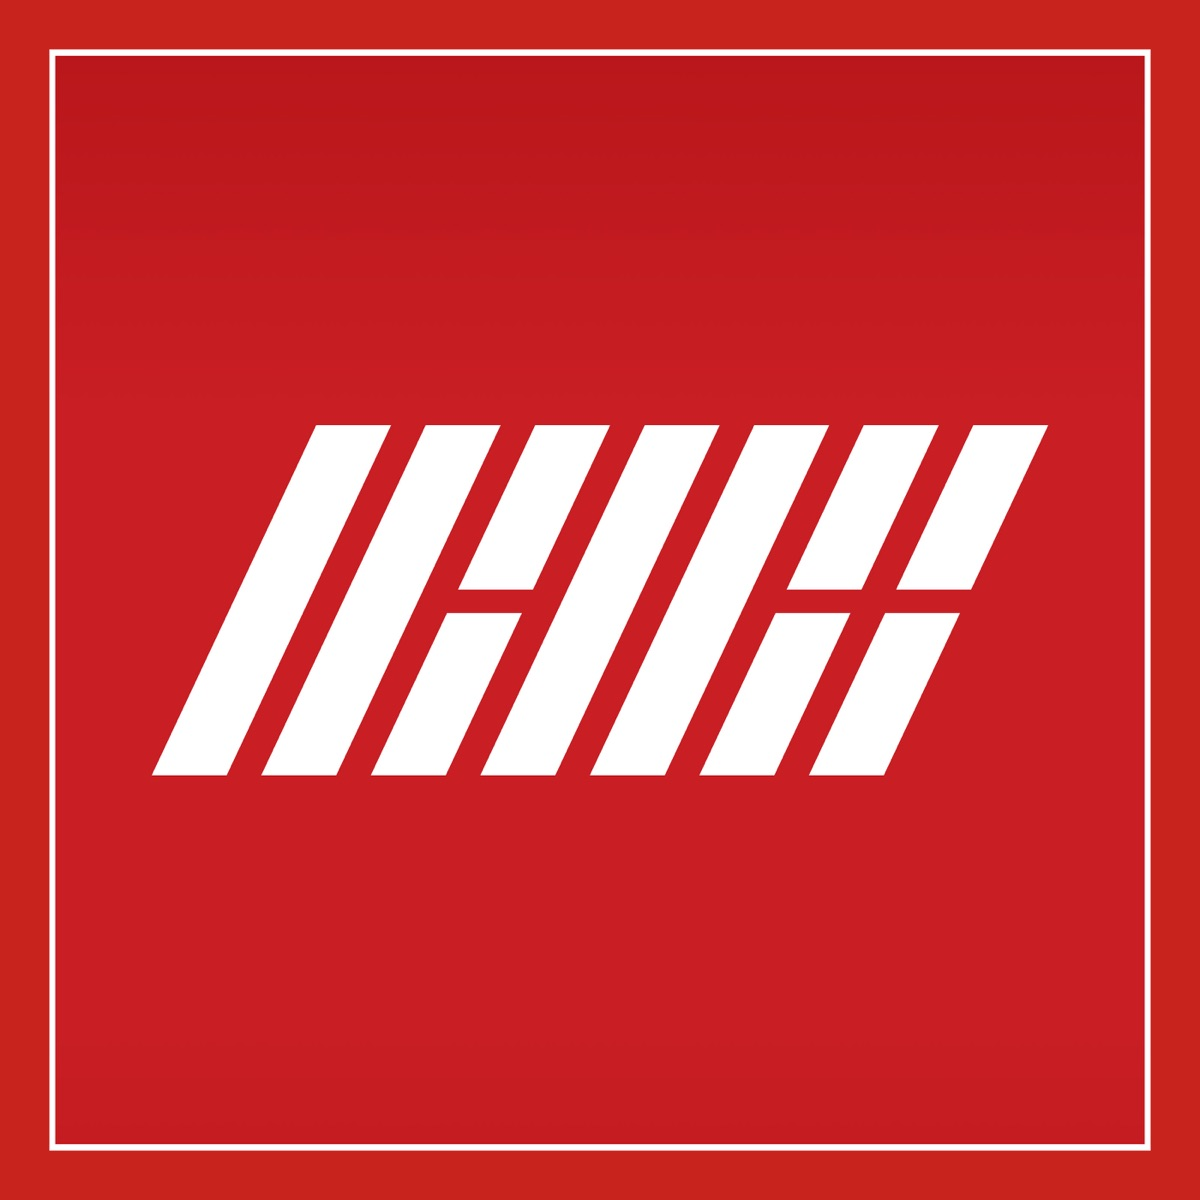 WELCOME BACK - EP Album Cover by iKON